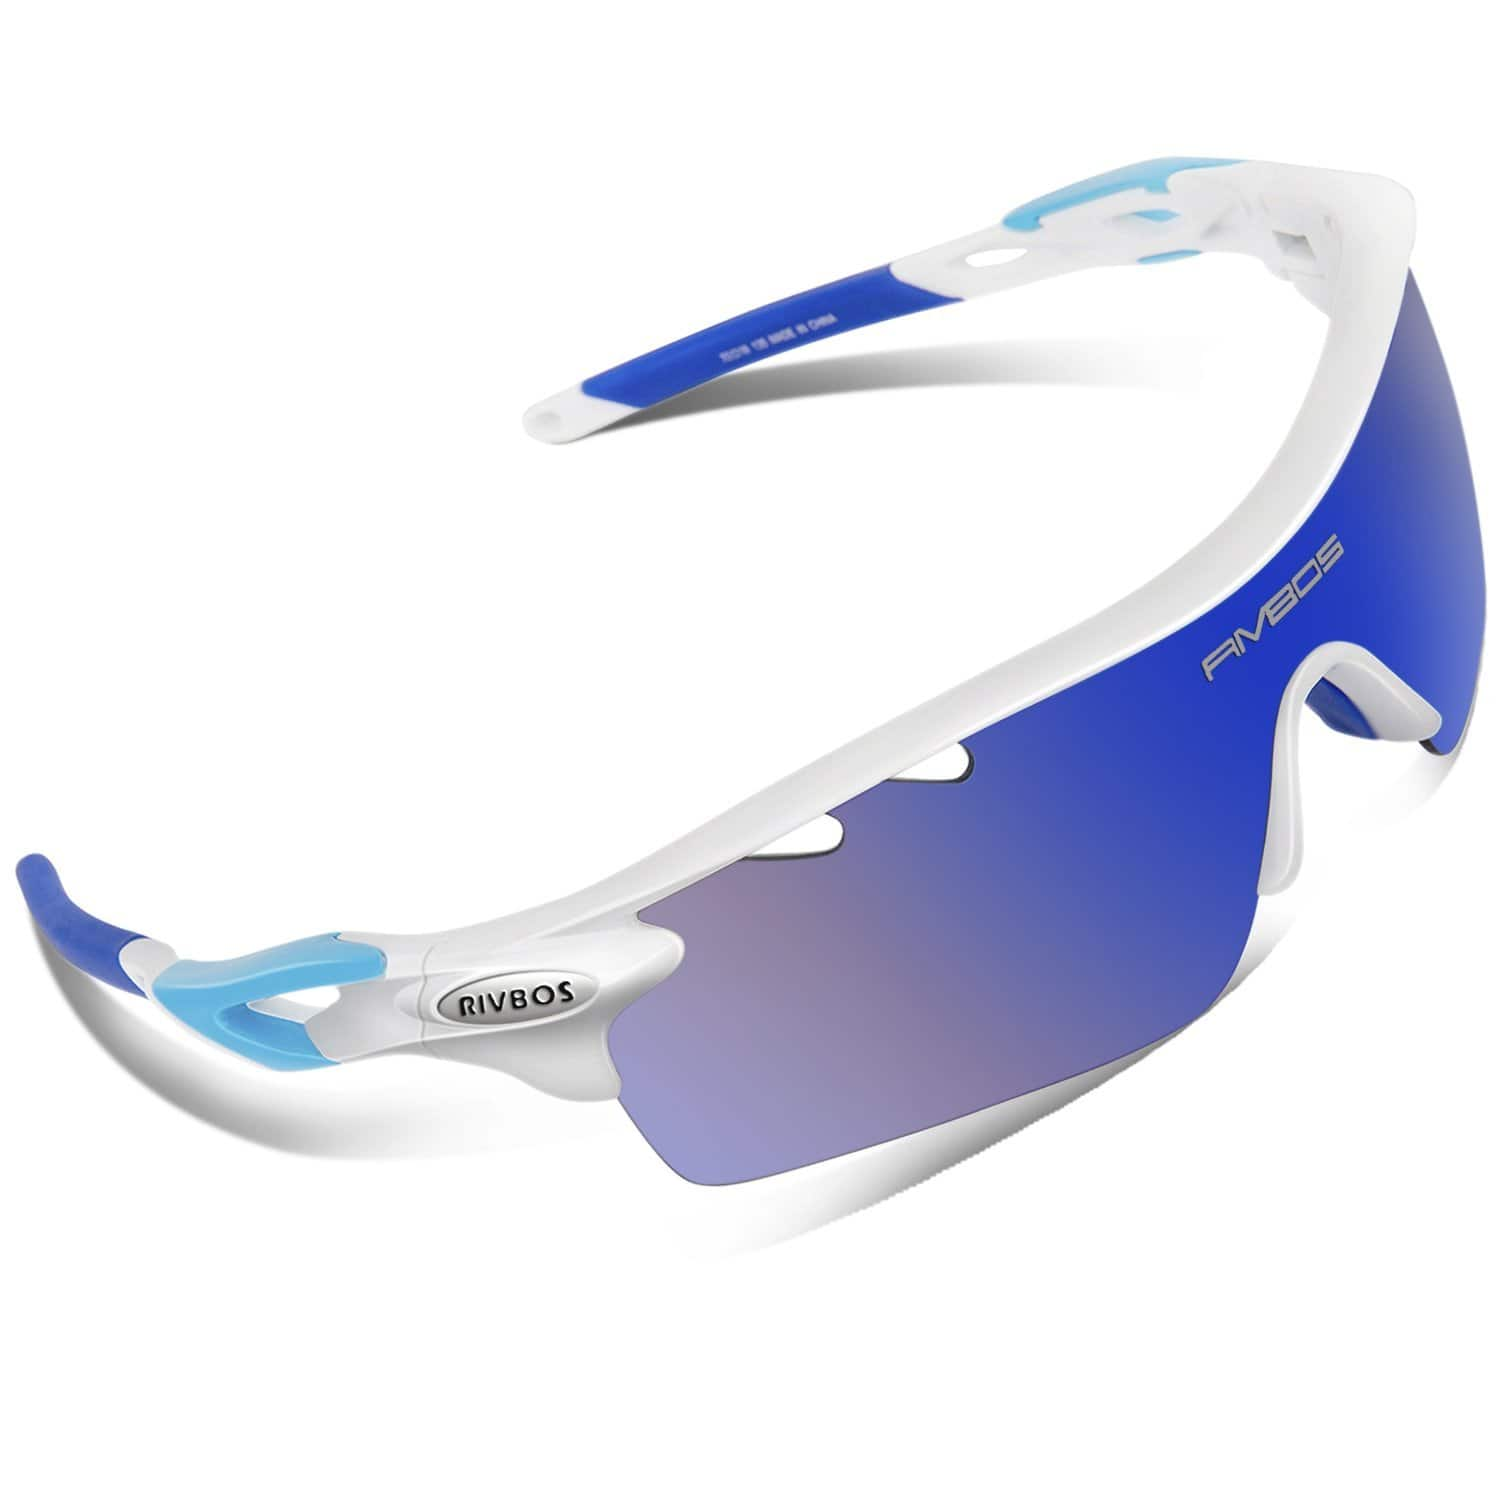 RIVBOS 801 Polarized Sports Sunglasses Sun Glasses with 5 Lenses for $9.99 @amazon